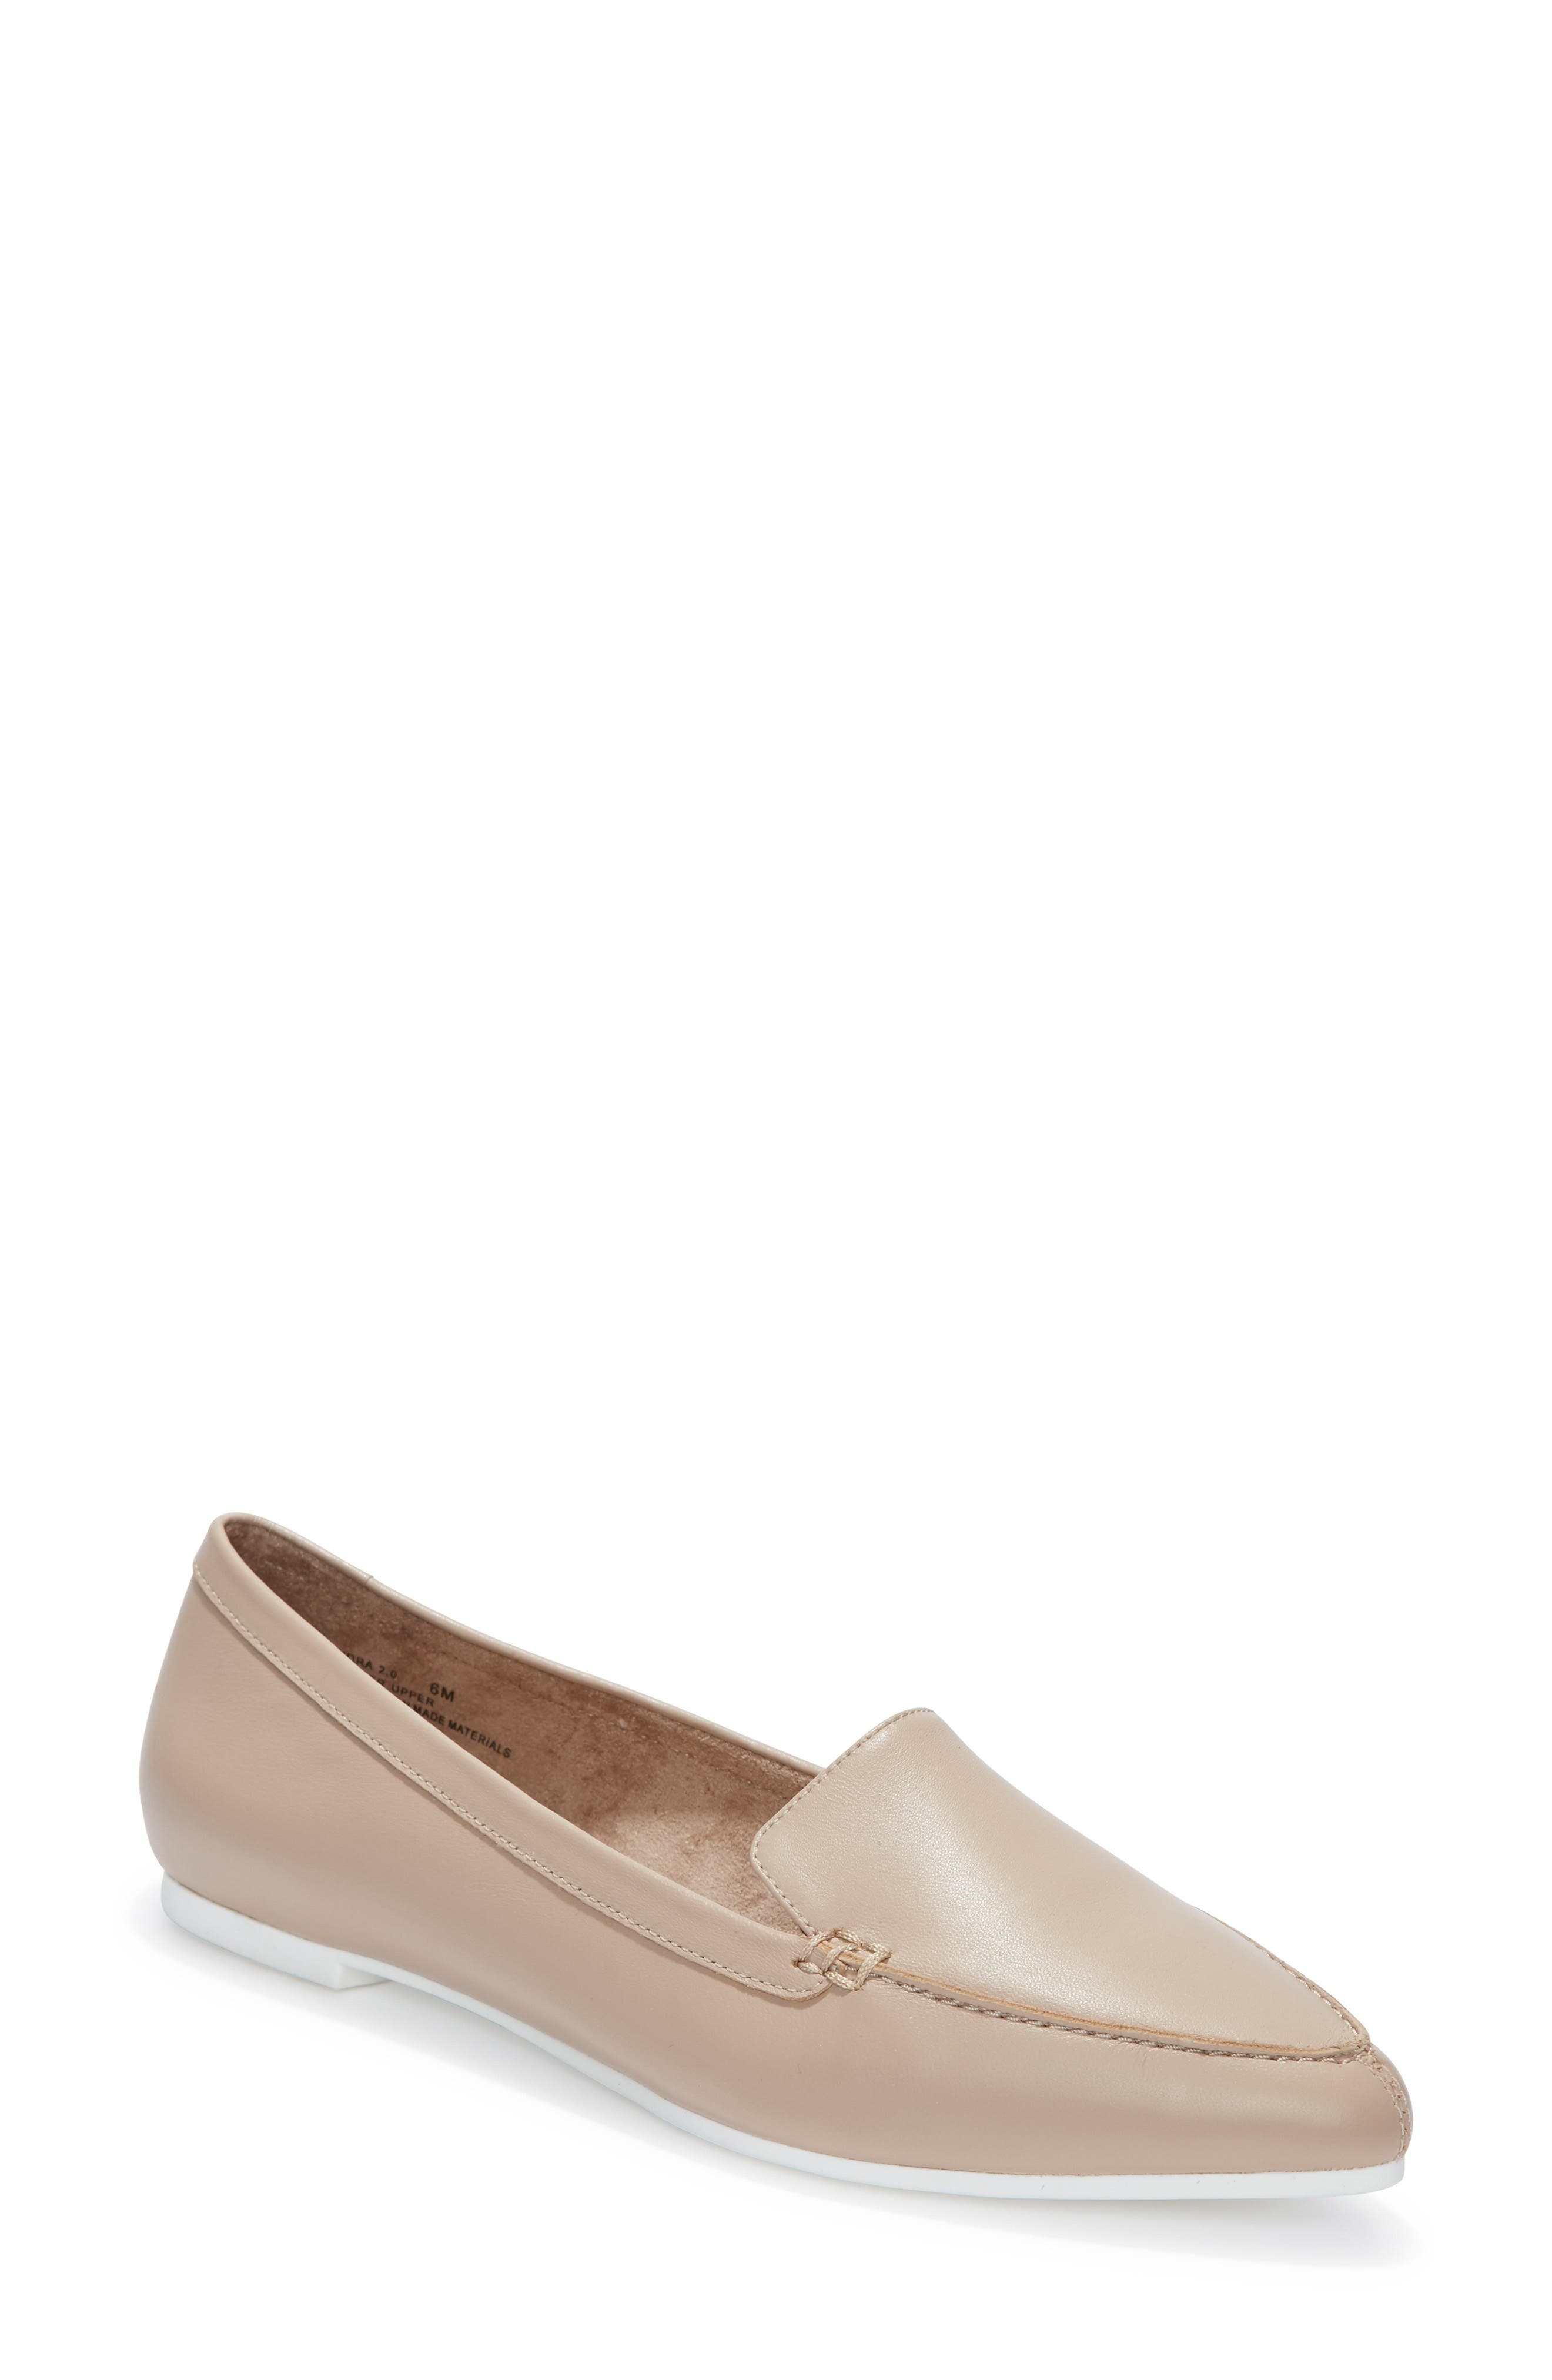 Me Too Audra Loafer Flat- Beige